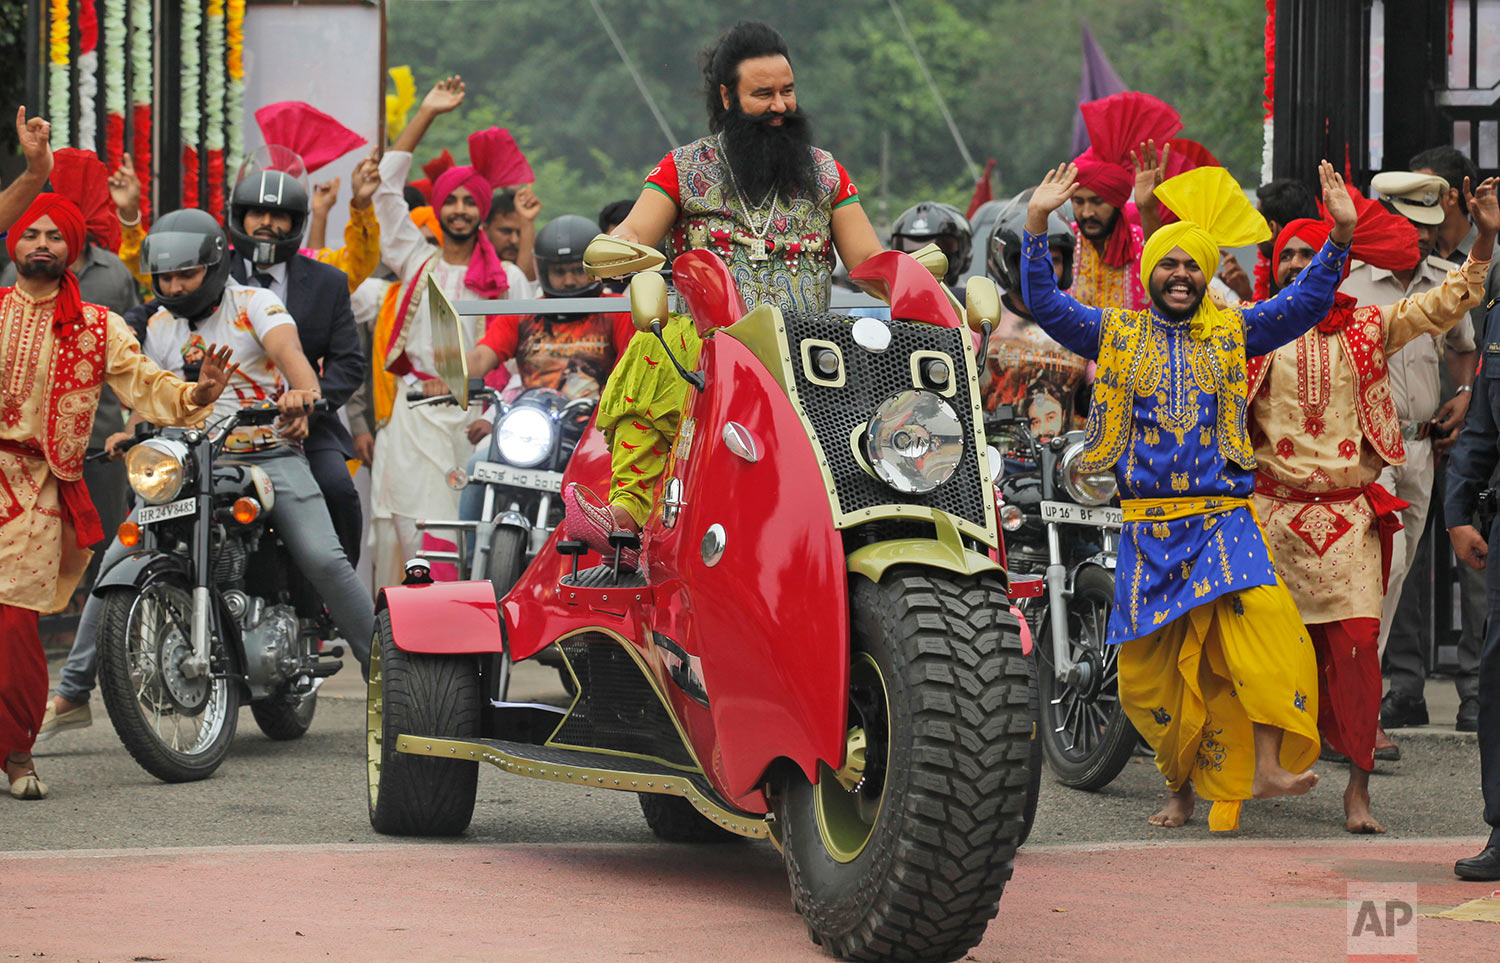 "In this Wednesday, Oct. 5, 2016 photo, Indian spiritual guru, who calls himself Dr. Saint Gurmeet Singh Ram Rahim Insan, rides a motorcycle as he arrives for a press conference ahead of the release of his new film ""MSG: The Warrior Lion Heart,"" in New Delhi, India. (AP Photo/Tsering Topgyal)"